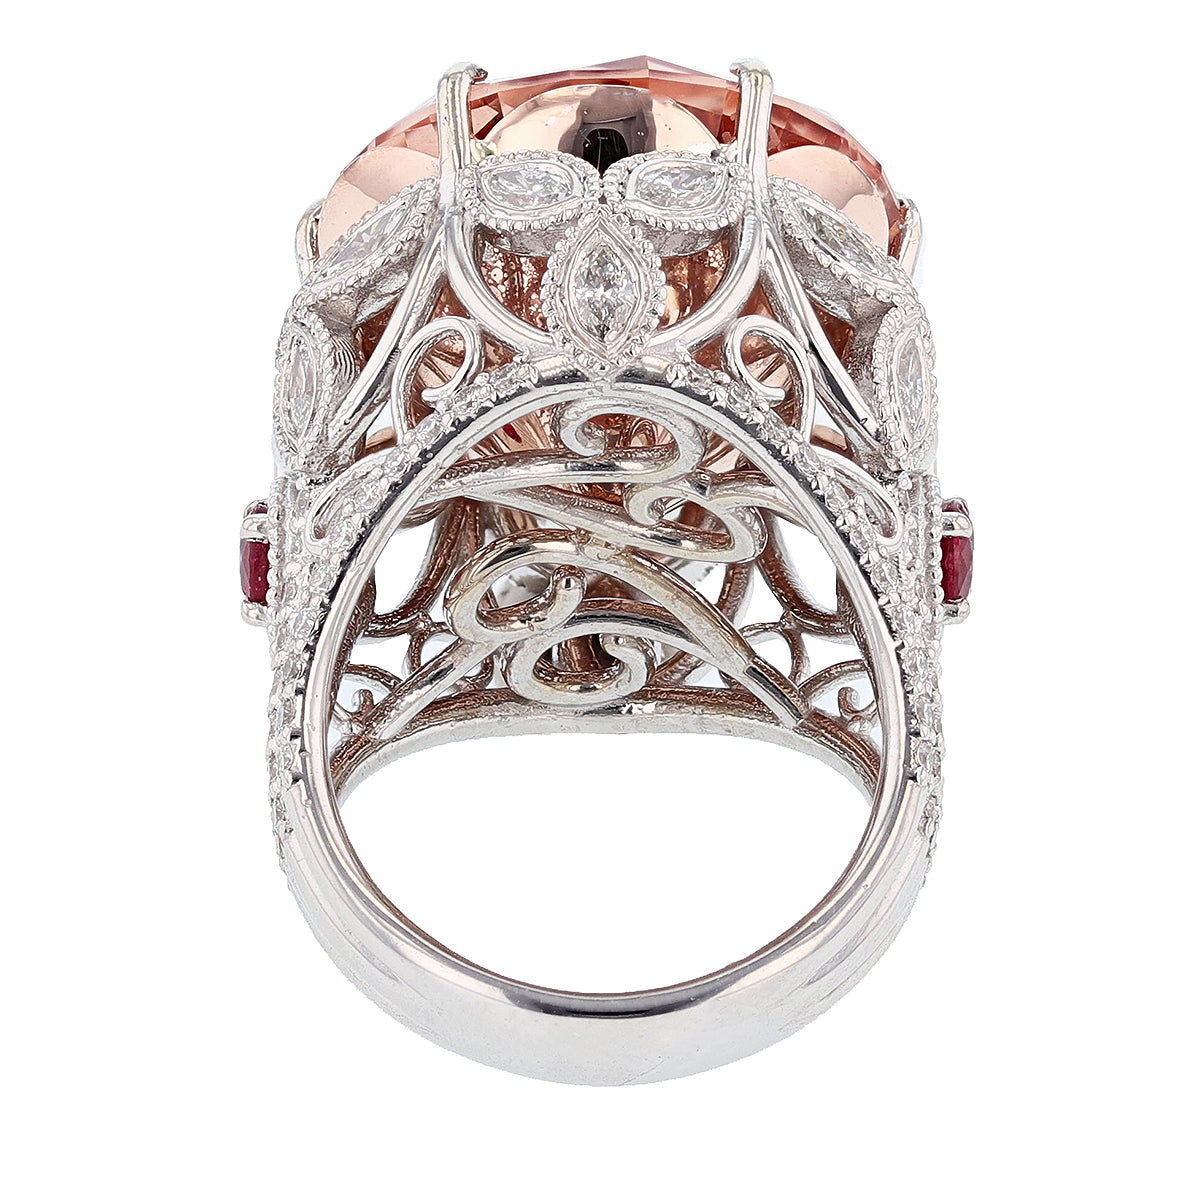 14K White and Rose Gold 23.40Ct Morganite, Diamond, and Ruby Ring